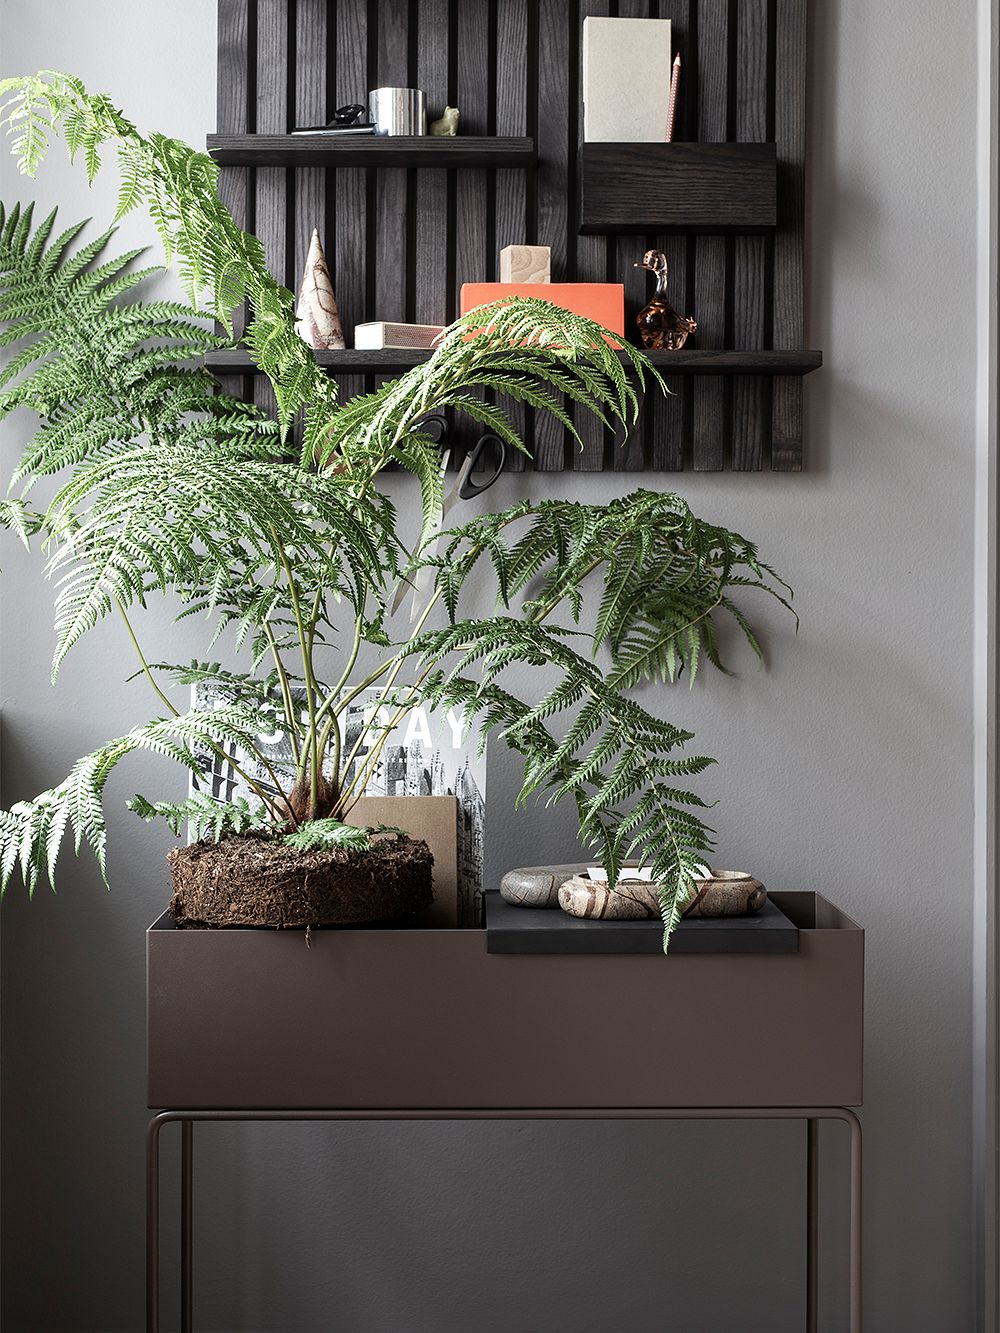 Ferm Living's Plant Box planter as a part of the decoration.